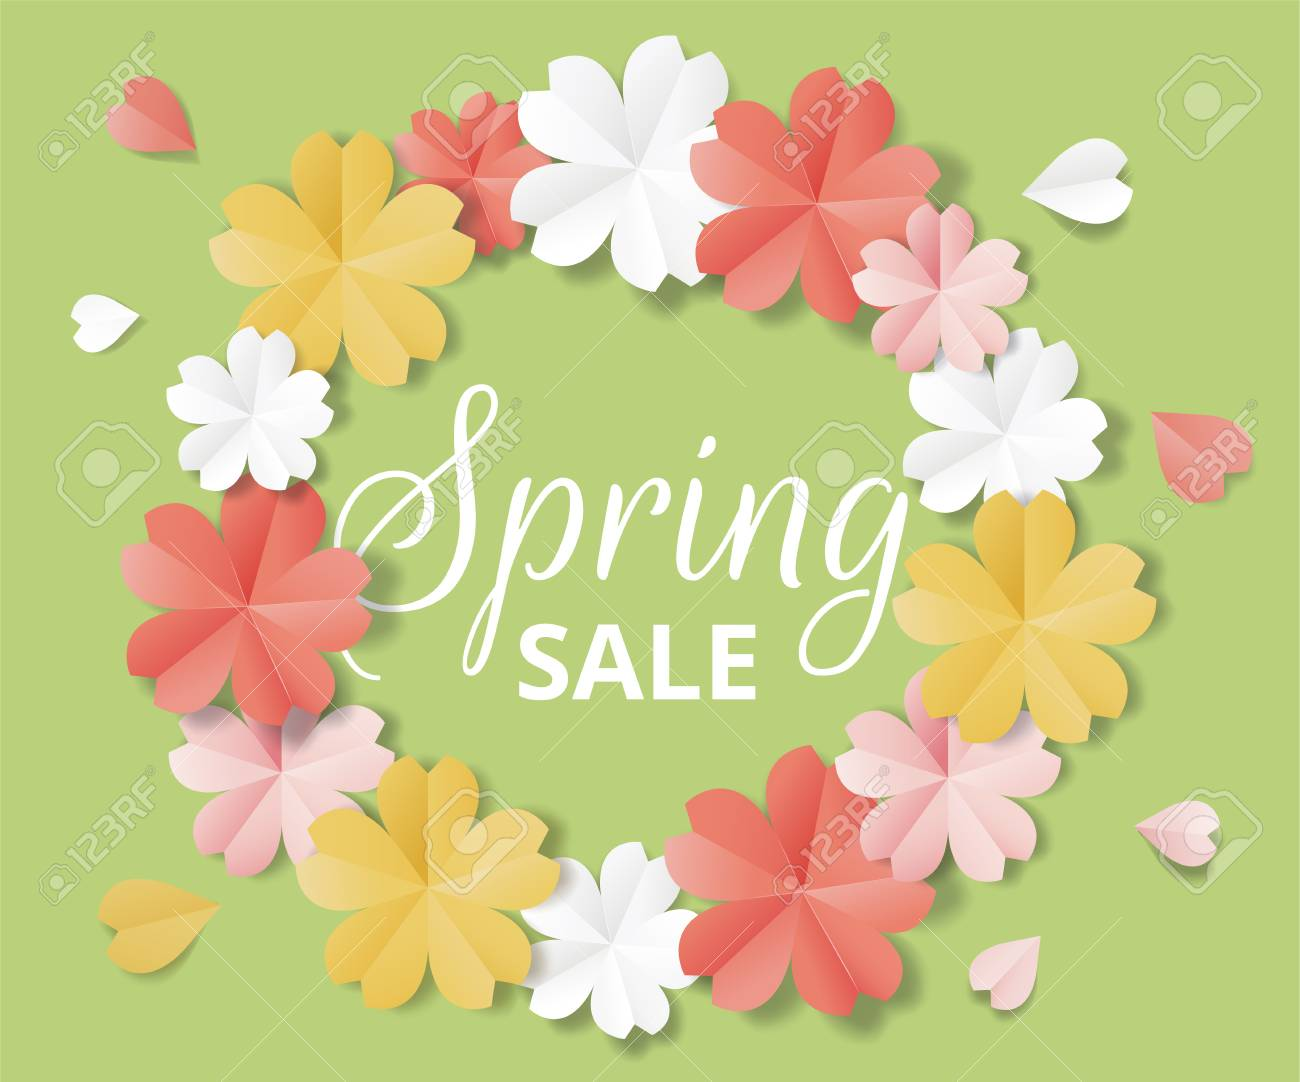 Colorful Paper Flowers With Text Spring Sale Vector Illustration